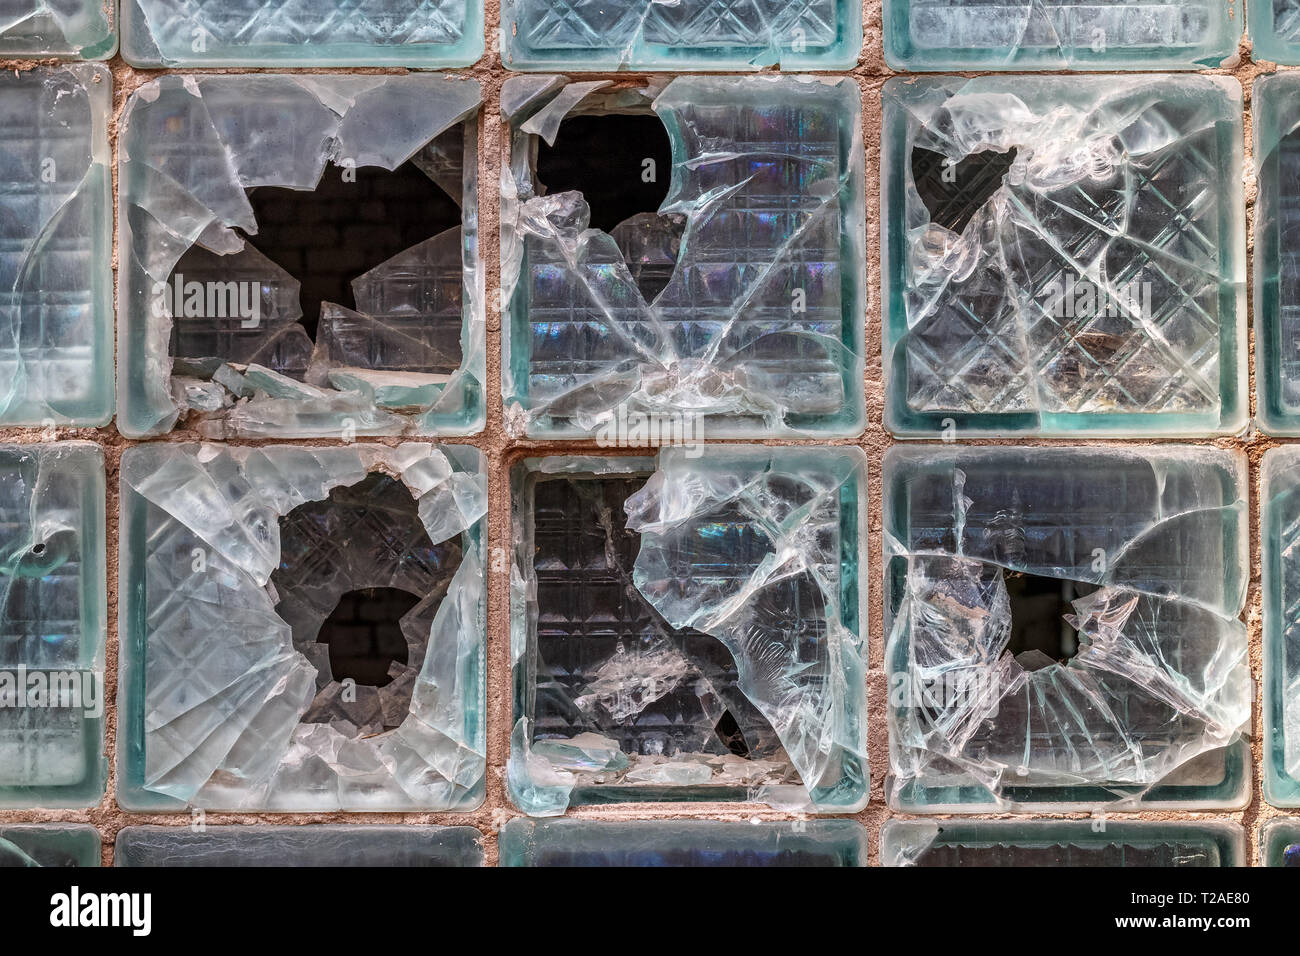 Texture background of old broken glass blocks for mockup or design pattern in construction, food or industrial flat layer of sample concept. - Stock Image